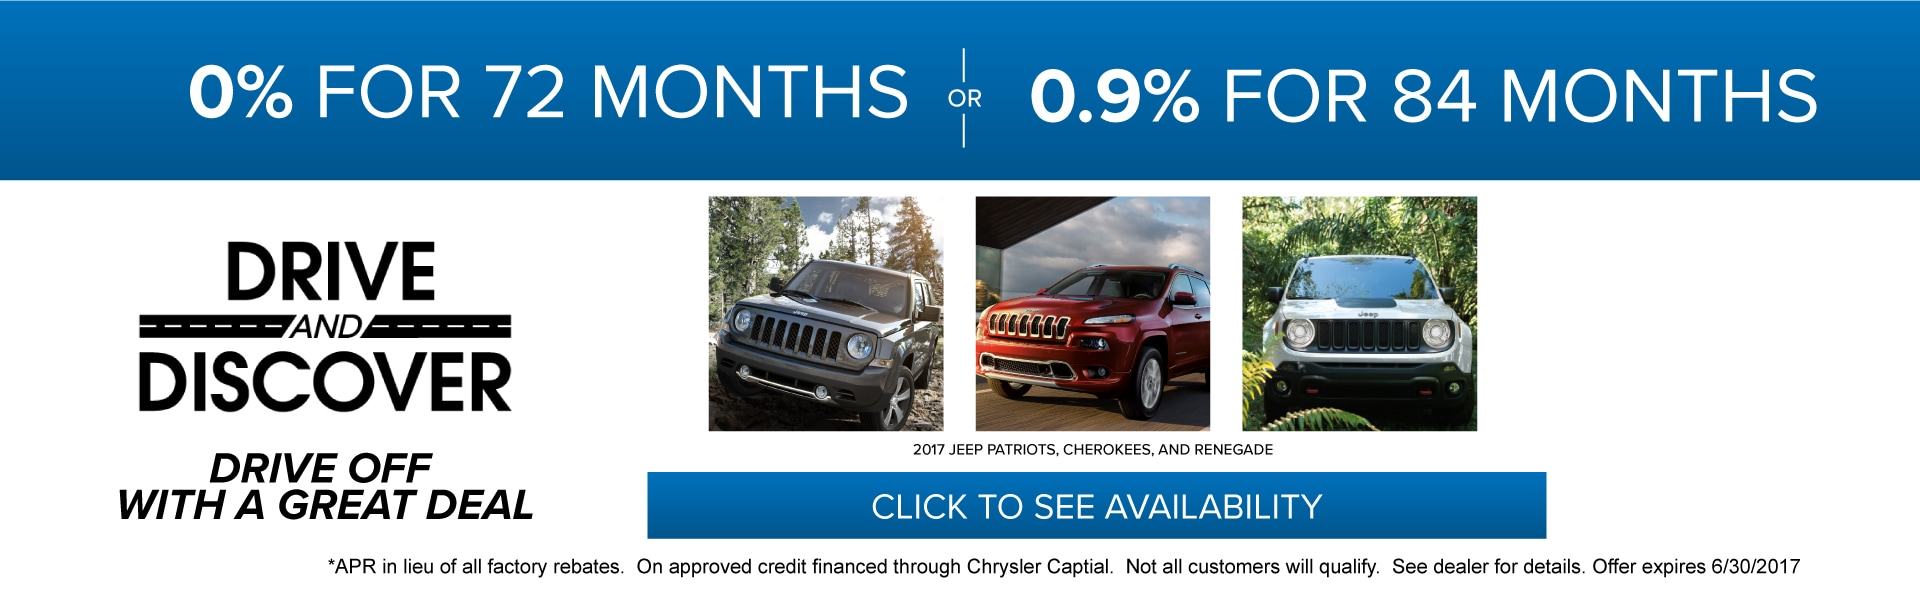 Drive and Discover - Limited Time Special APR Offers!